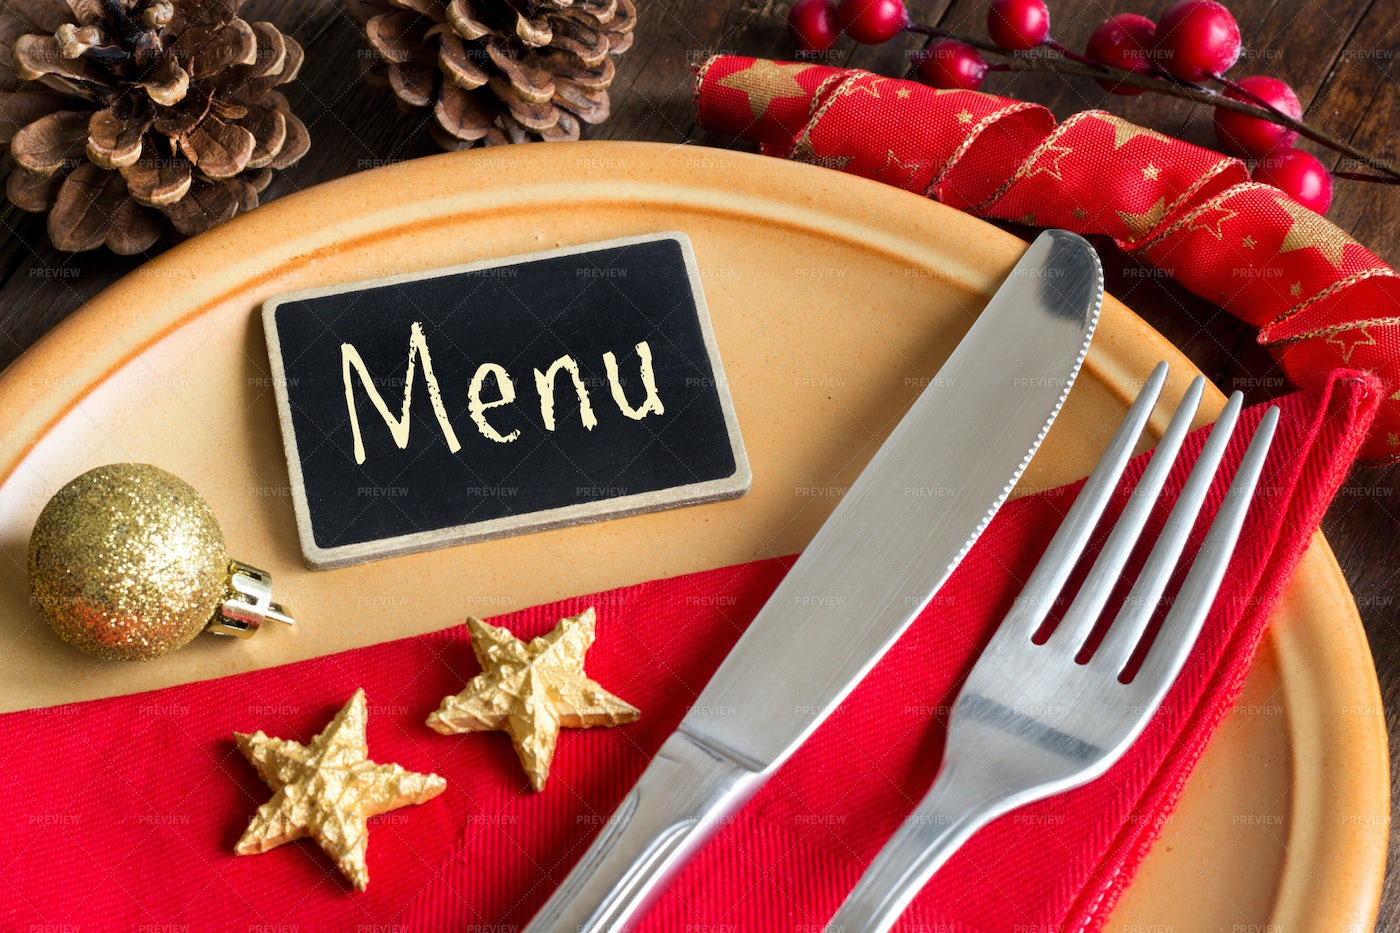 Table Setting With Chalkboard: Stock Photos